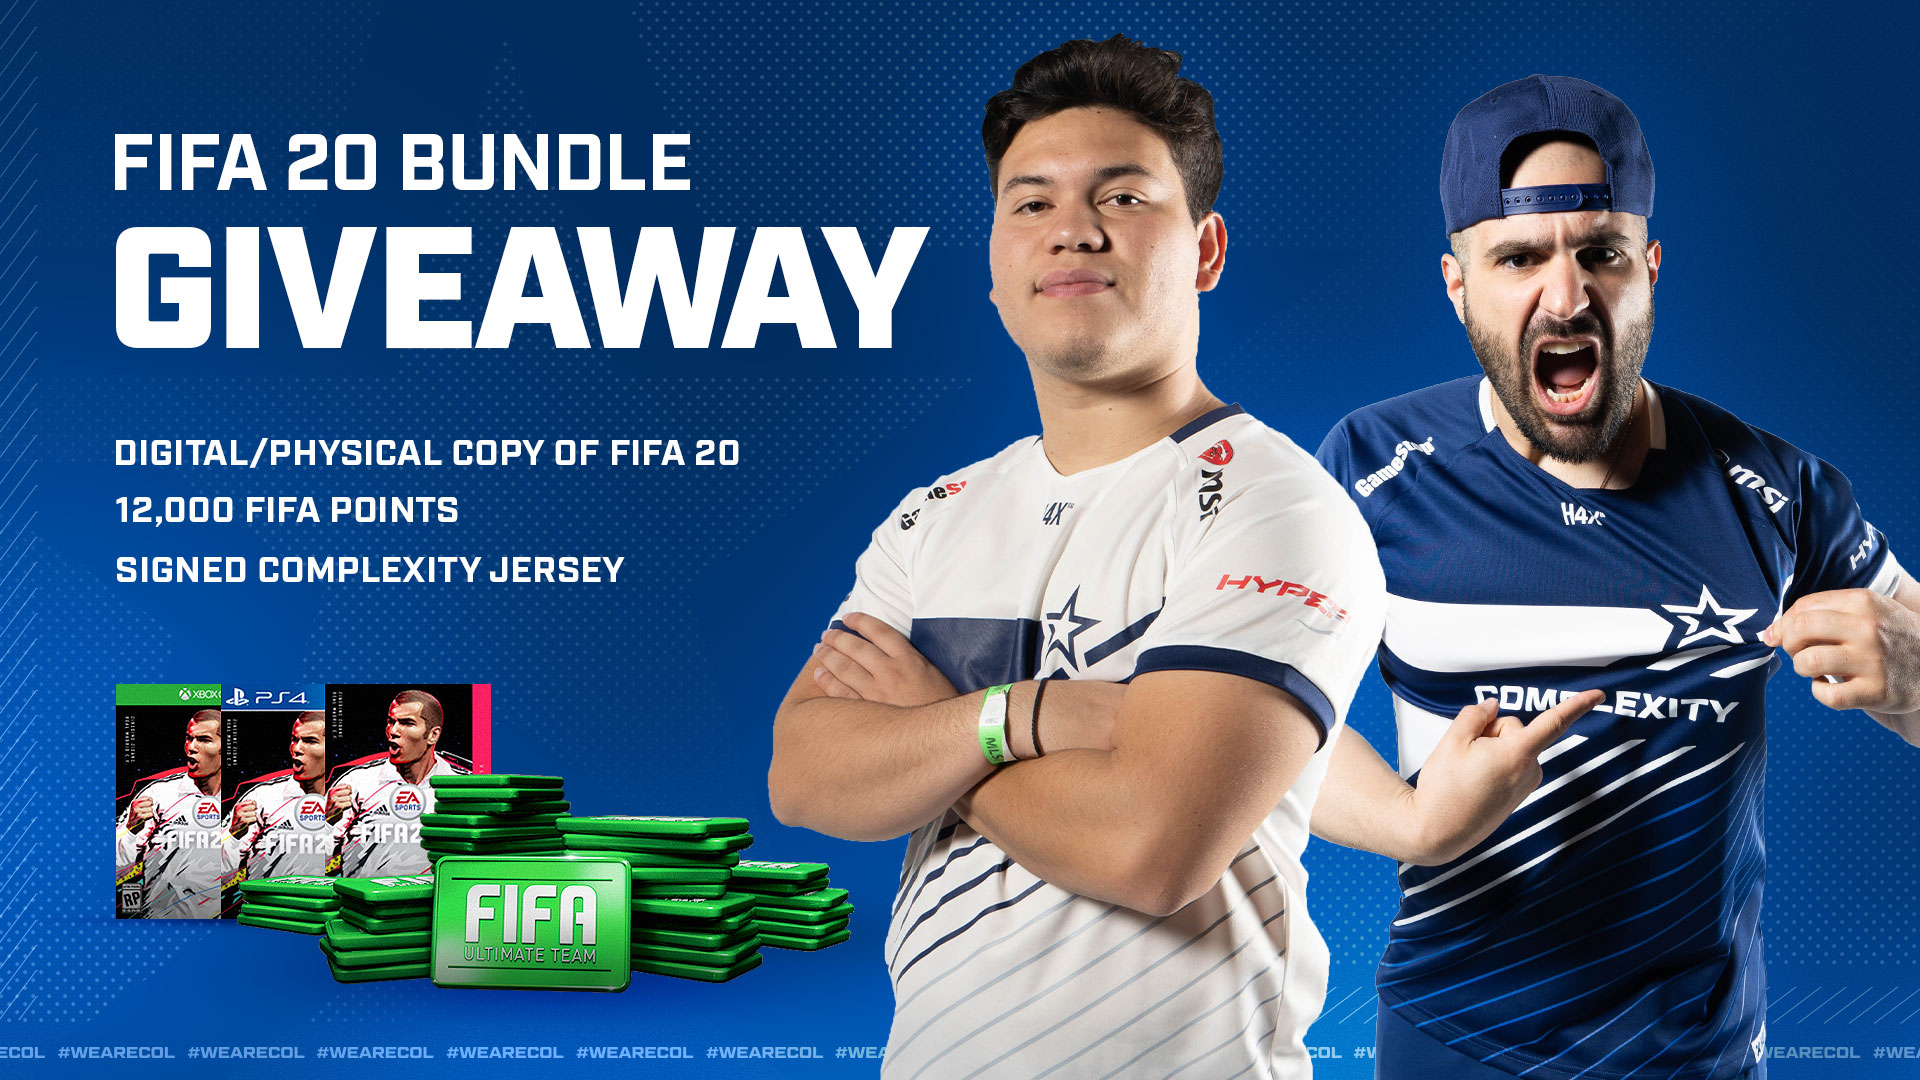 Enter for a chance to win a digital/physical copy of FIFA 20, 12000 FIFA points, and a Complexity jersey! Giveaway Image